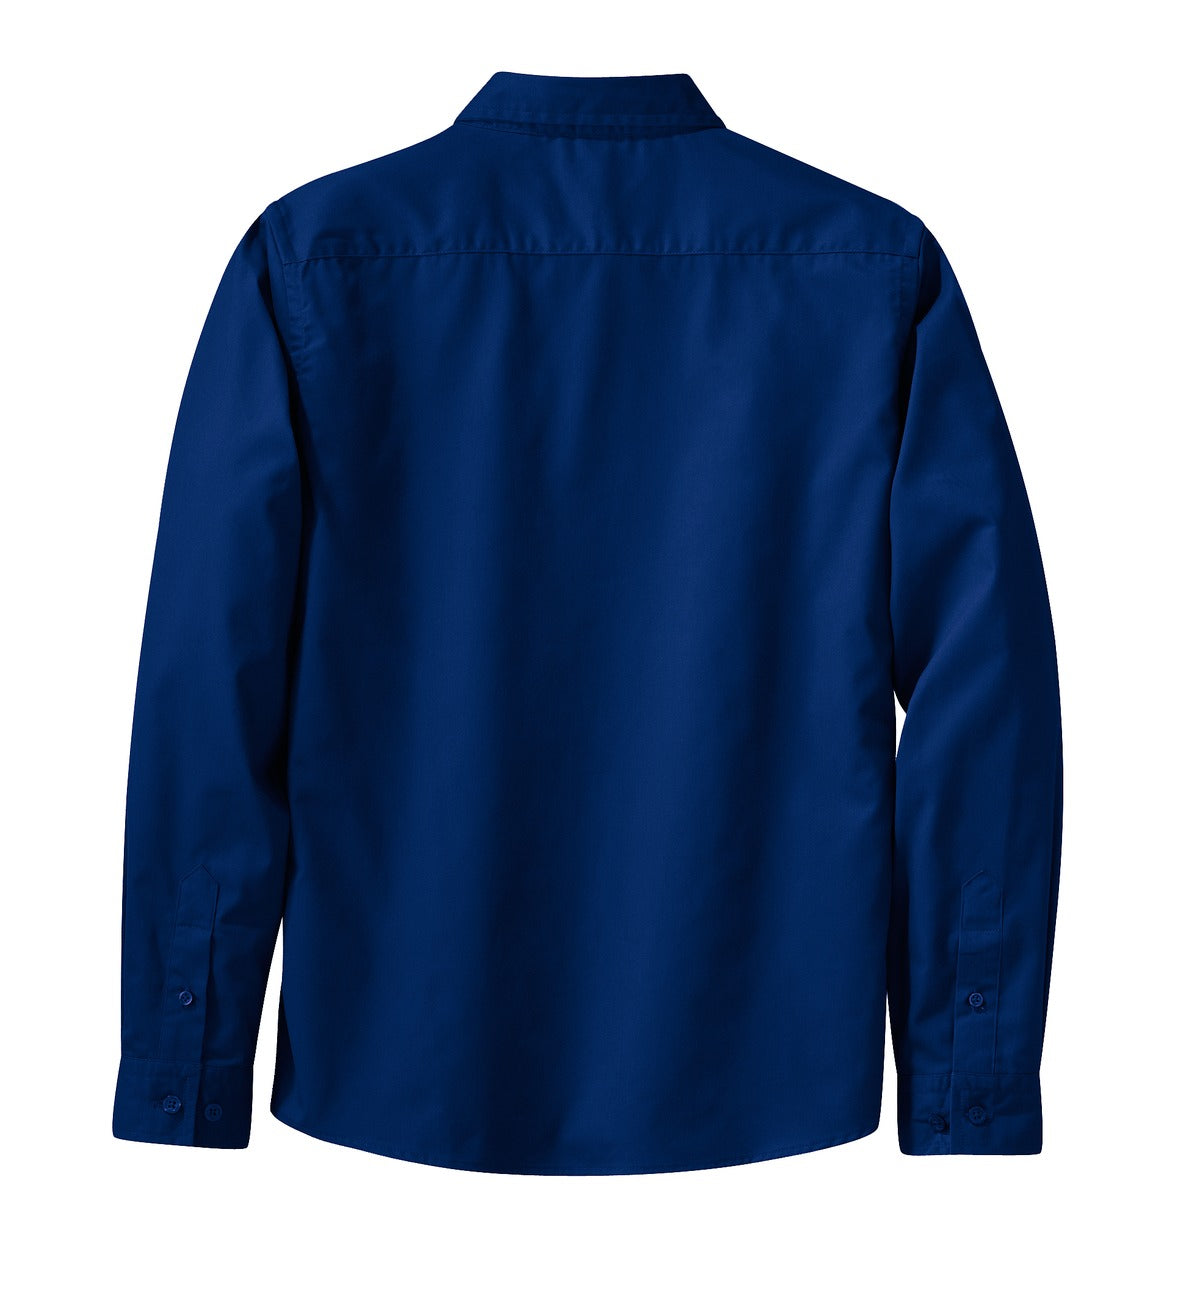 Mafoose Women's Long Sleeve Easy Care Shirt Mediterranean Blue-Back